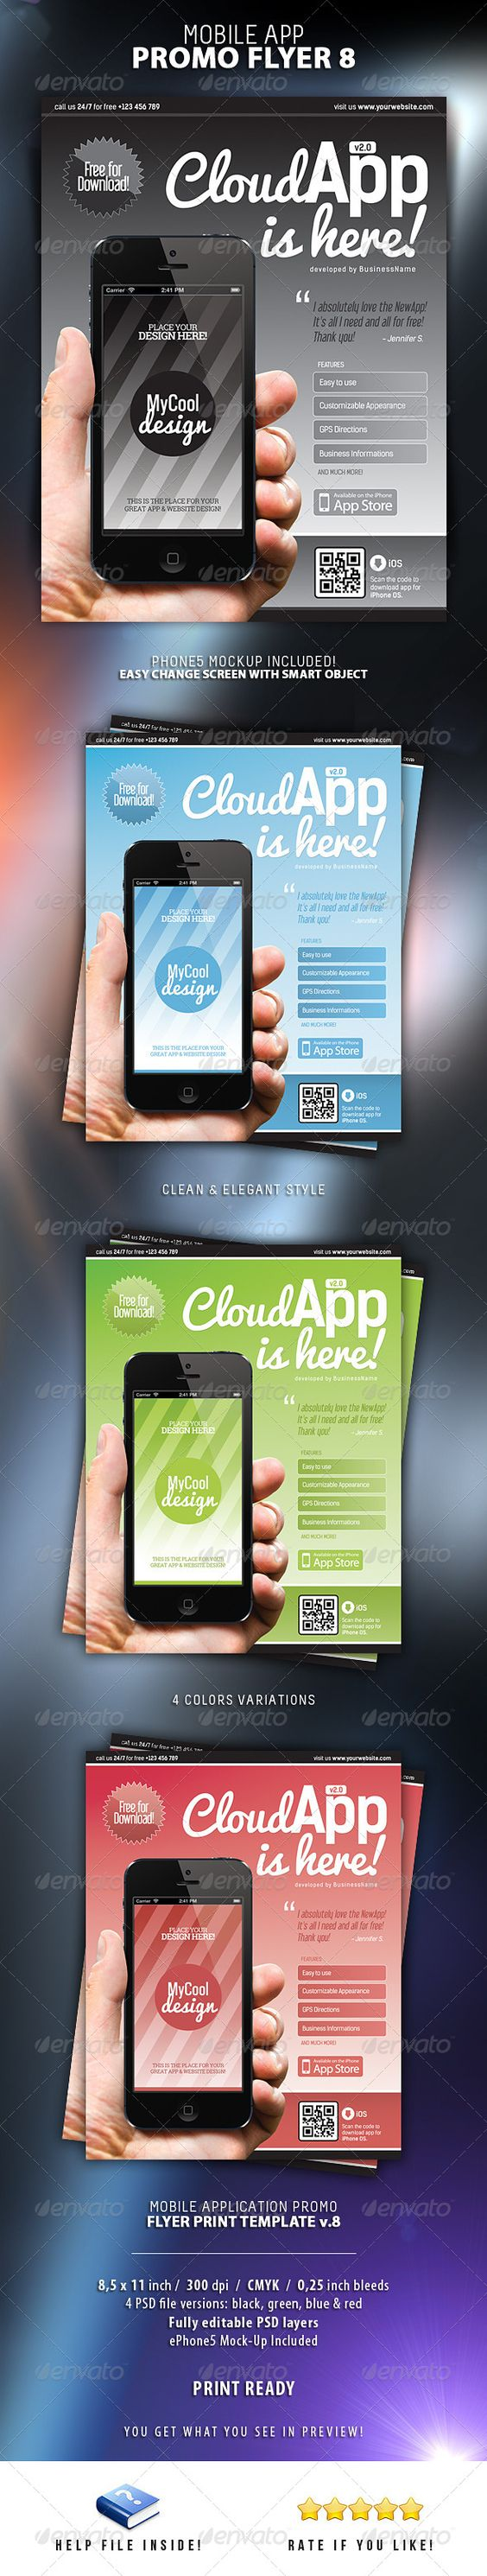 mobile app flyers 8 mobile app promotion and adobe buy mobile app flyers 8 by level studio on graphicriver mobile app flyers print template 8 a great flyer print template for promoting or advertising your